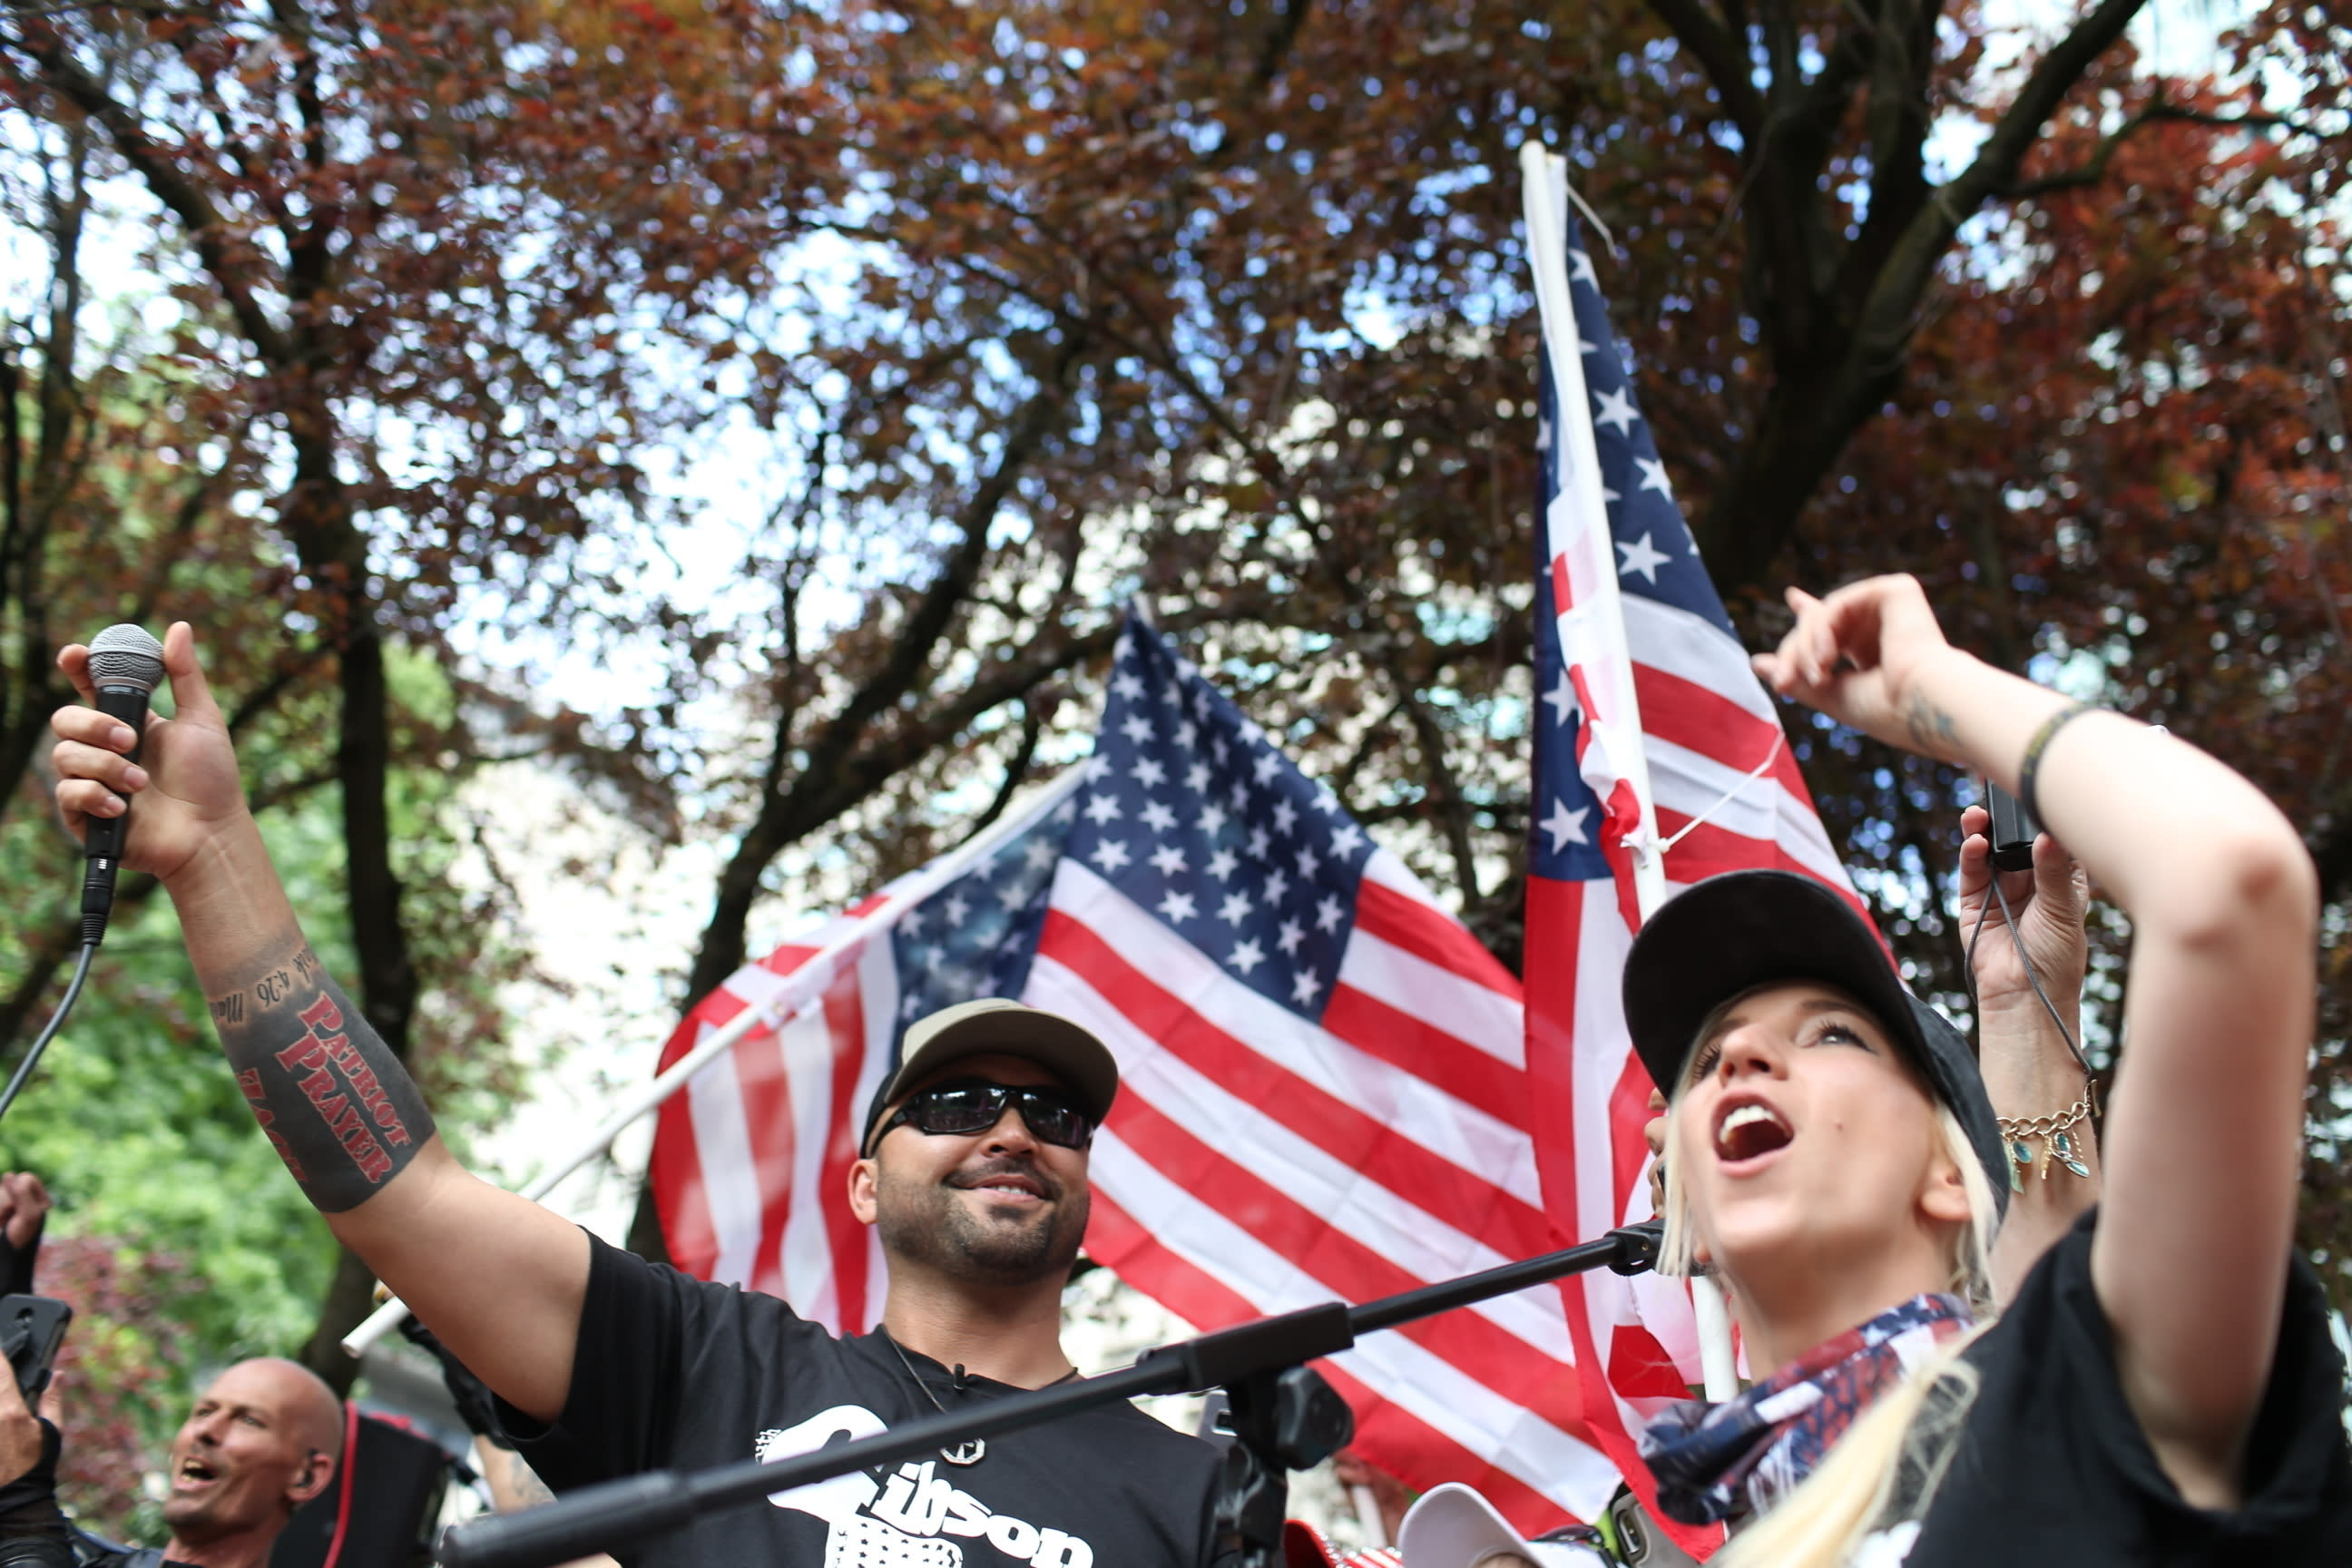 <p> FILE--In this June 30, 2018, file photo, Joey Gibson, left, leader of Patriot Prayer, heads the group's rally in Portland, Ore. Portland is bracing for what could be another round of violent clashes Saturday, Aug. 4, 2018, between a right-wing group holding a rally here and self-described anti-fascist counter-protesters who have pledged to keep Patriot Prayer and other affiliated groups out of this ultra-liberal city. (Mark Graves/The Oregonian via AP, file) </p>